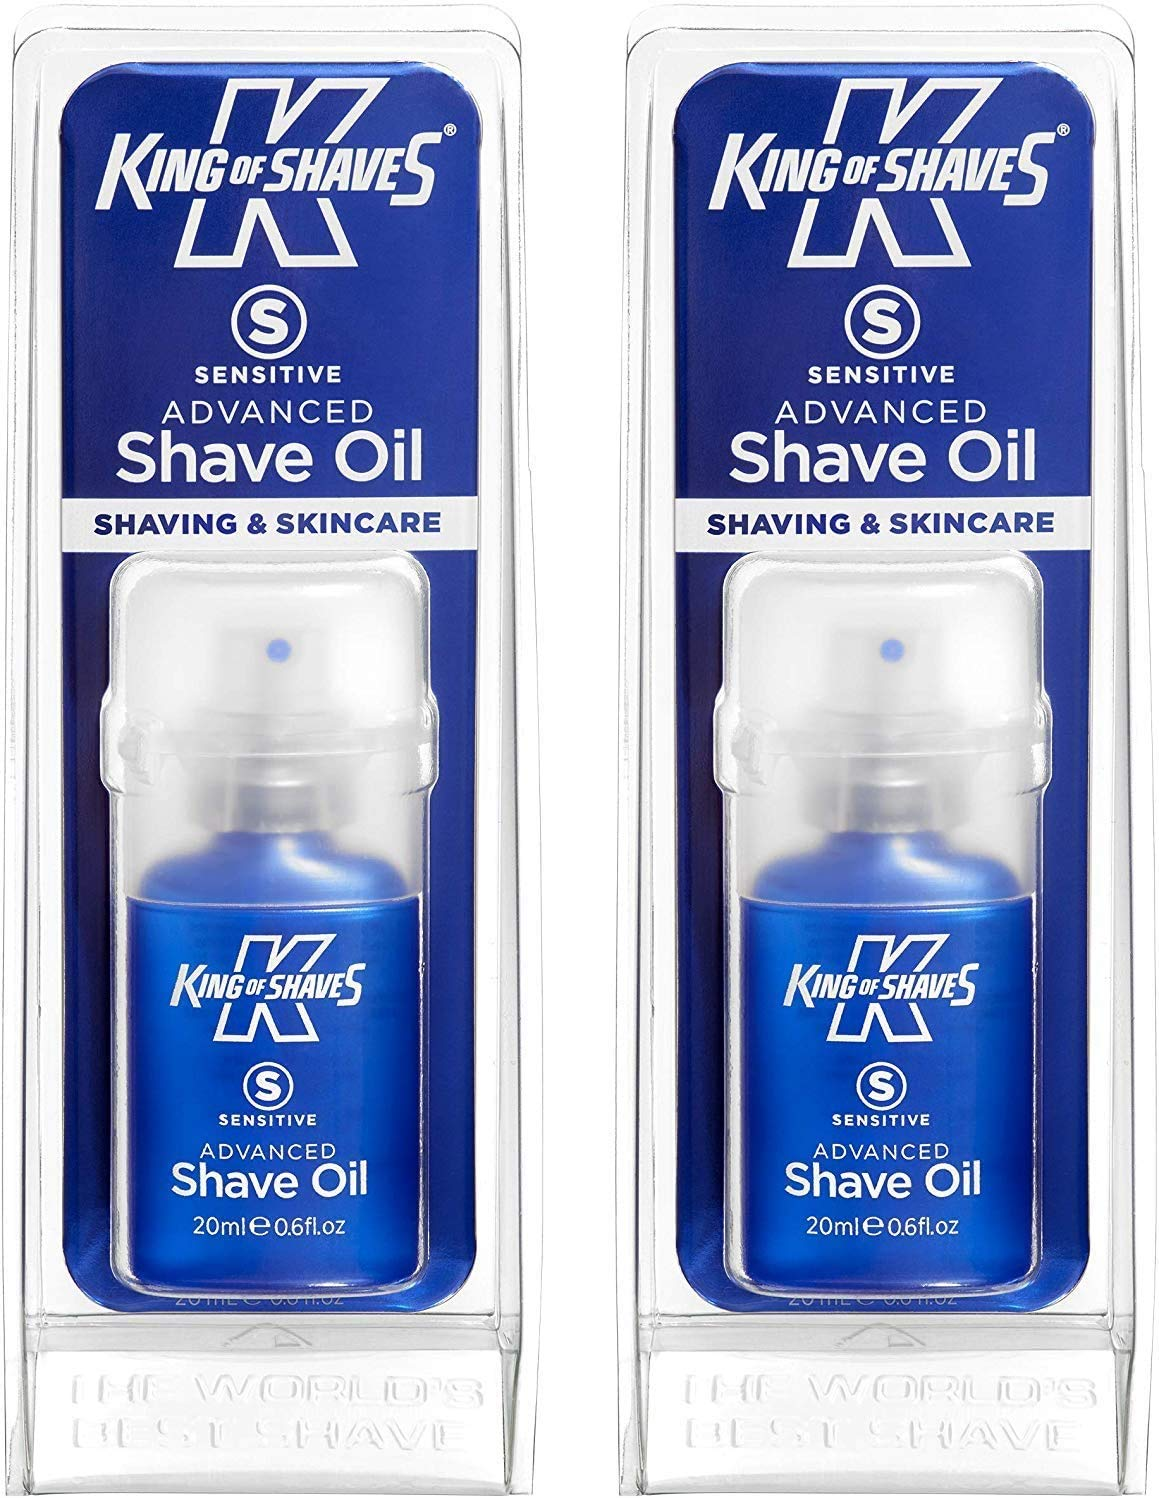 King of Shaves Sensitive Advanced Max 75% OFF Shaving With Pump Oil Max 55% OFF Handy 20